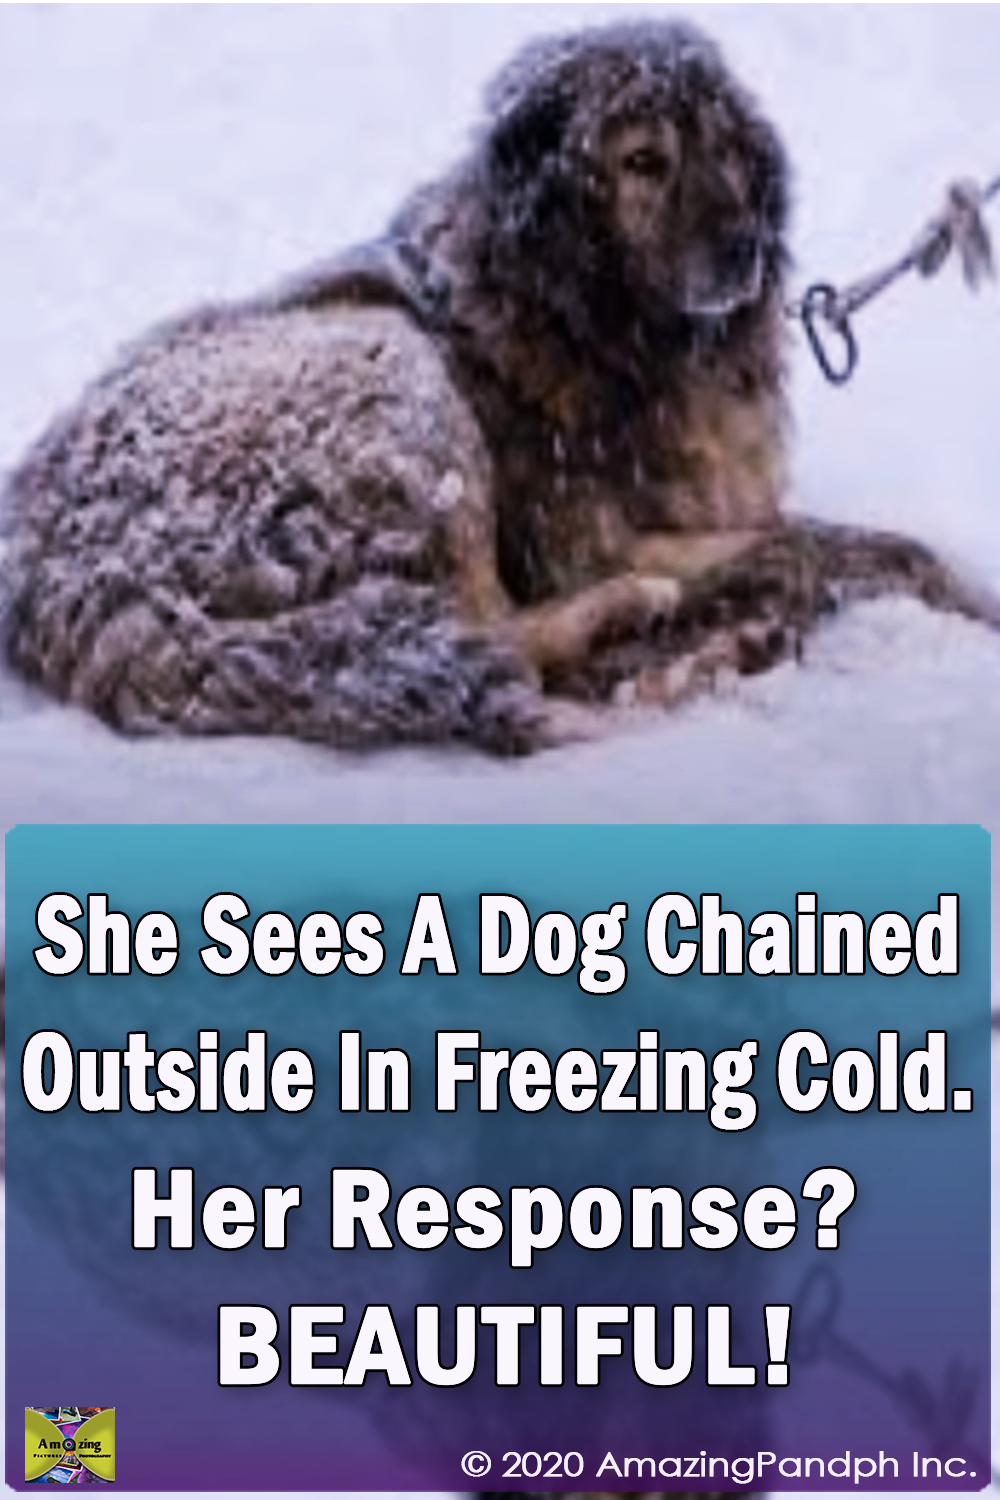 Chained dog, Outside, Freezing, Cold, Dog, Chain, Freez, song, shelter, stray dog,